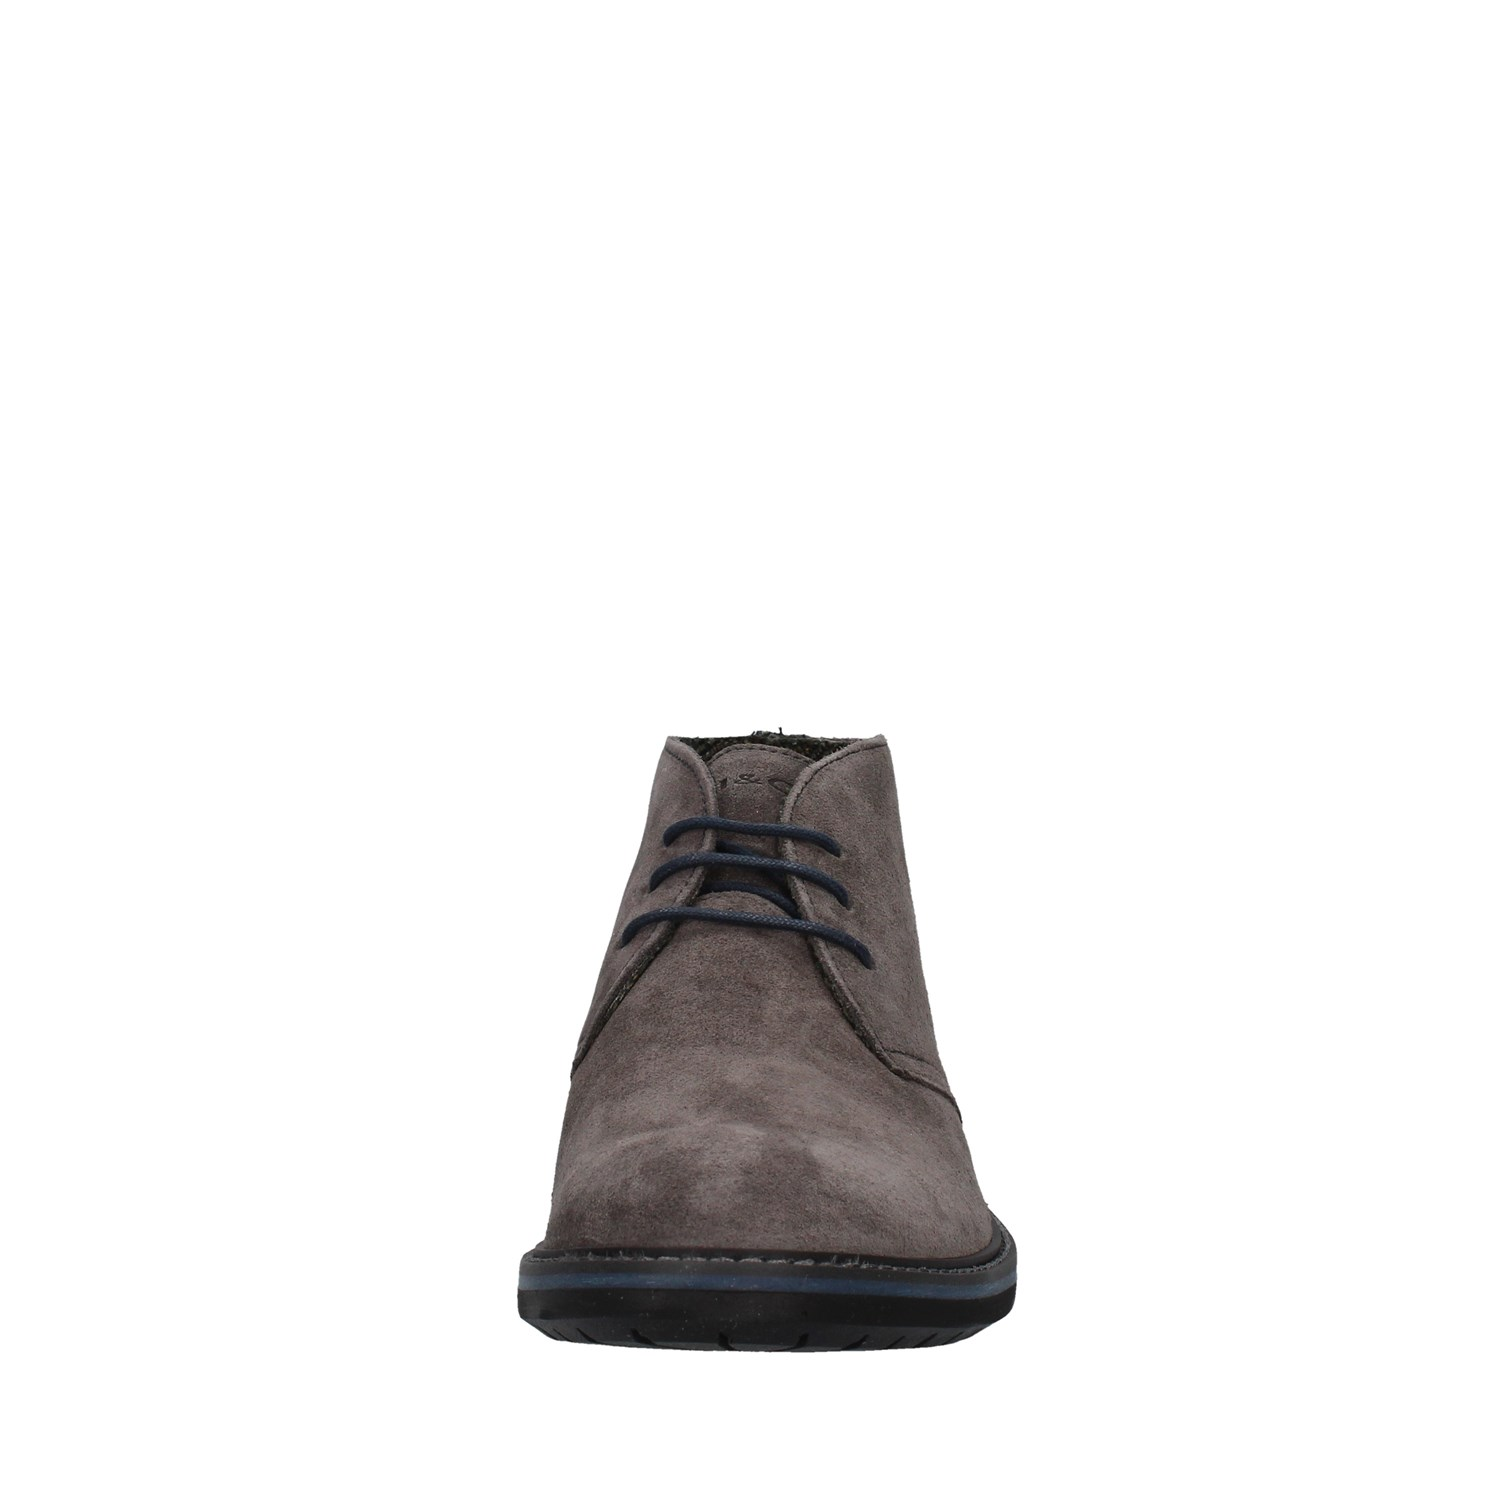 Igi&co Shoes Man Ankle GREY 2106311